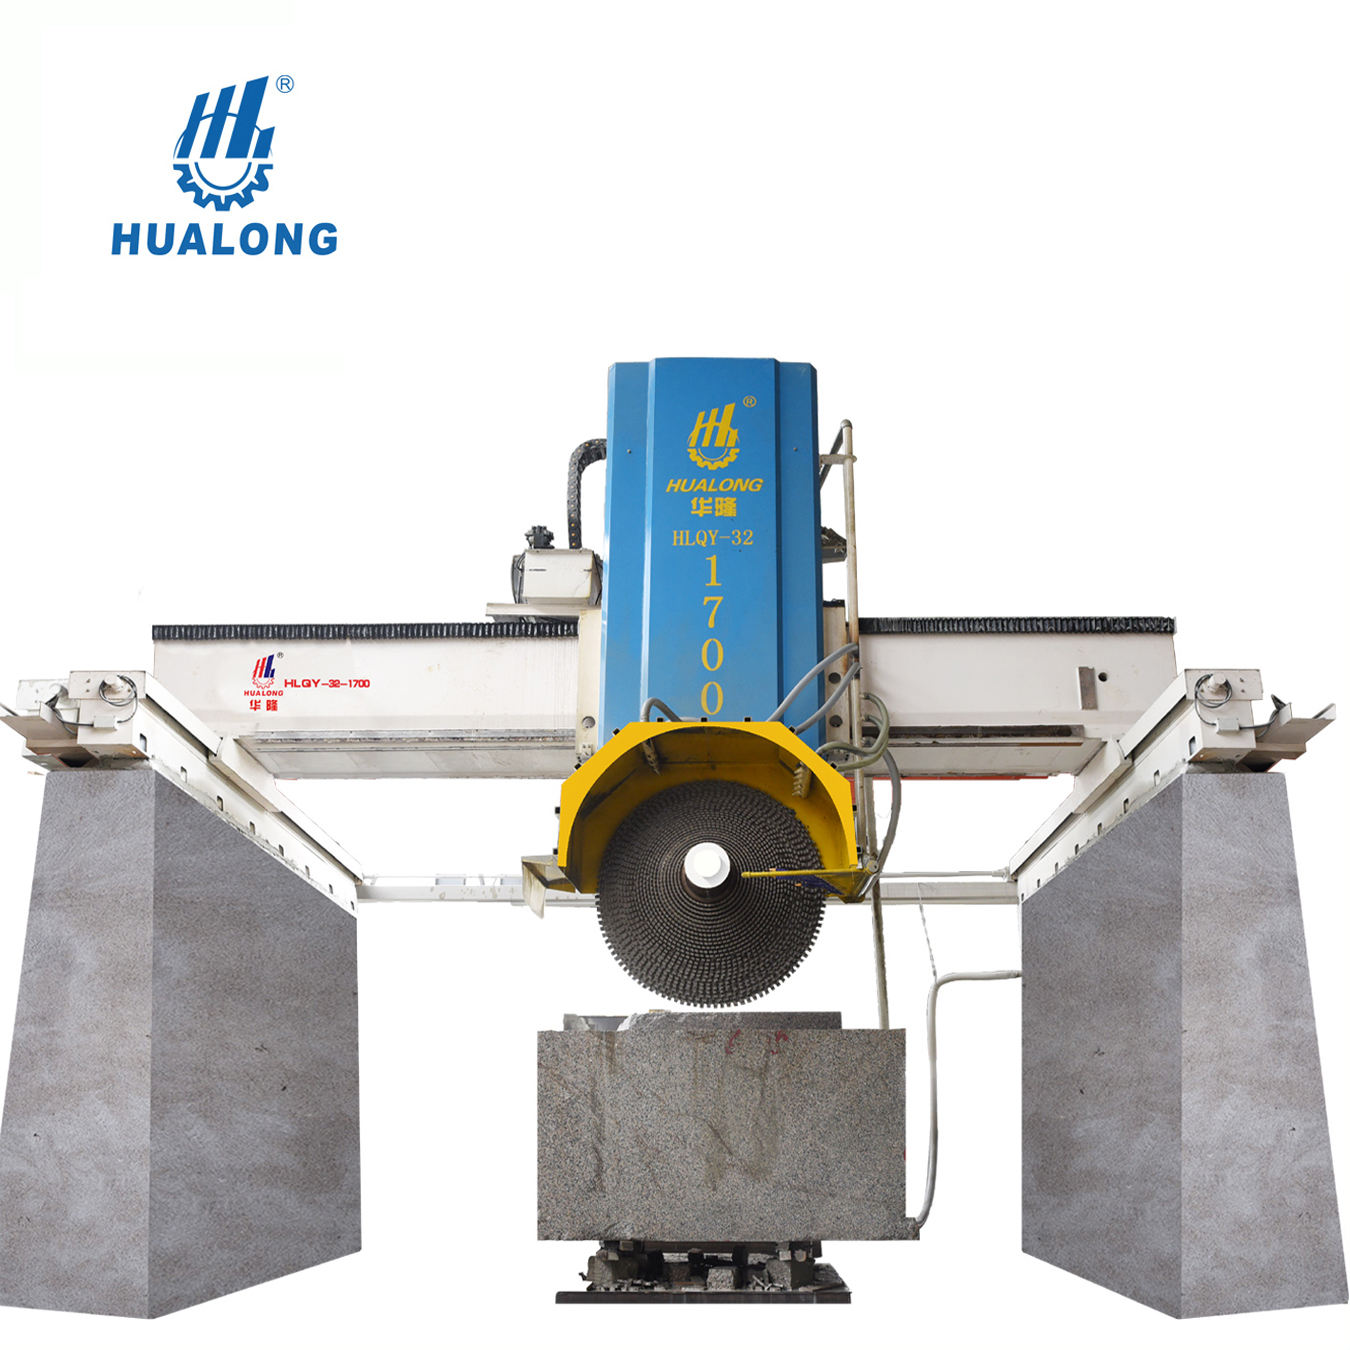 HLQY-32-1700 HuaLong Machinery Multi-blade Granite Cutting equipment natural stone cutting split machine with high efficiency